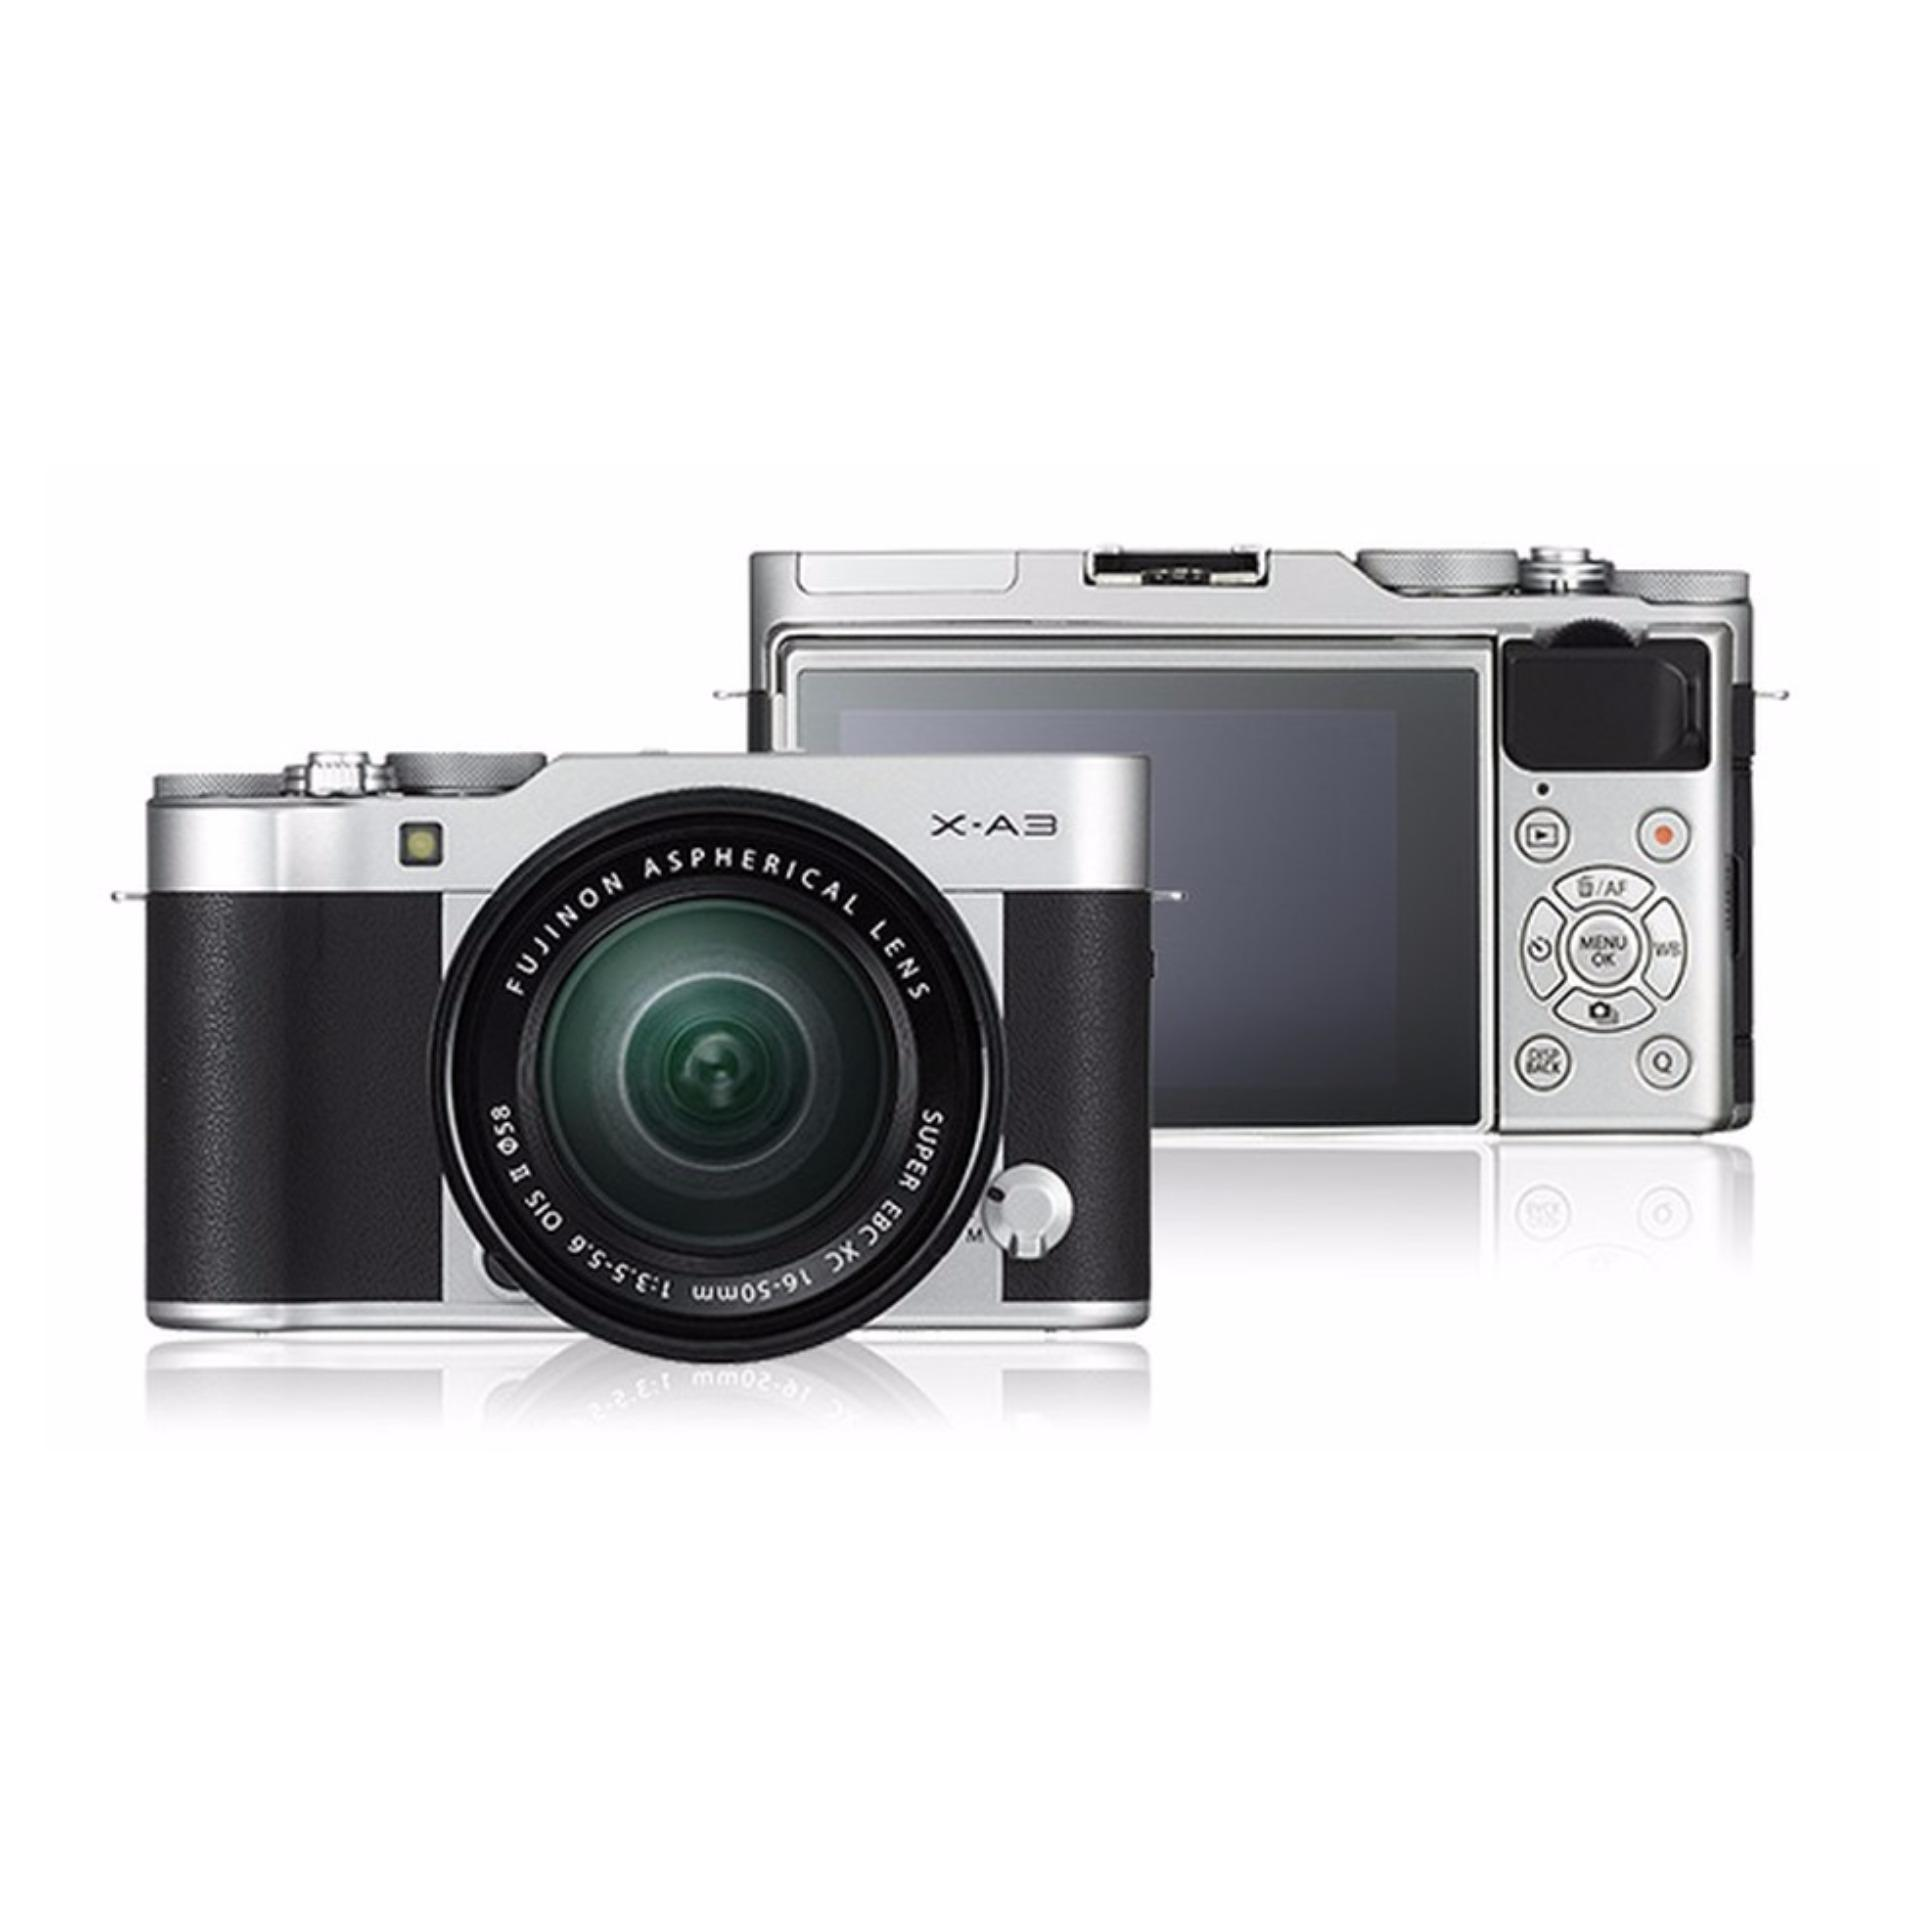 Fujifilm X-A3 24.2 MP Mirrorless Camera XC16-50mm F3.5-5.6 II Lens Kit (Silver) export(Silver)